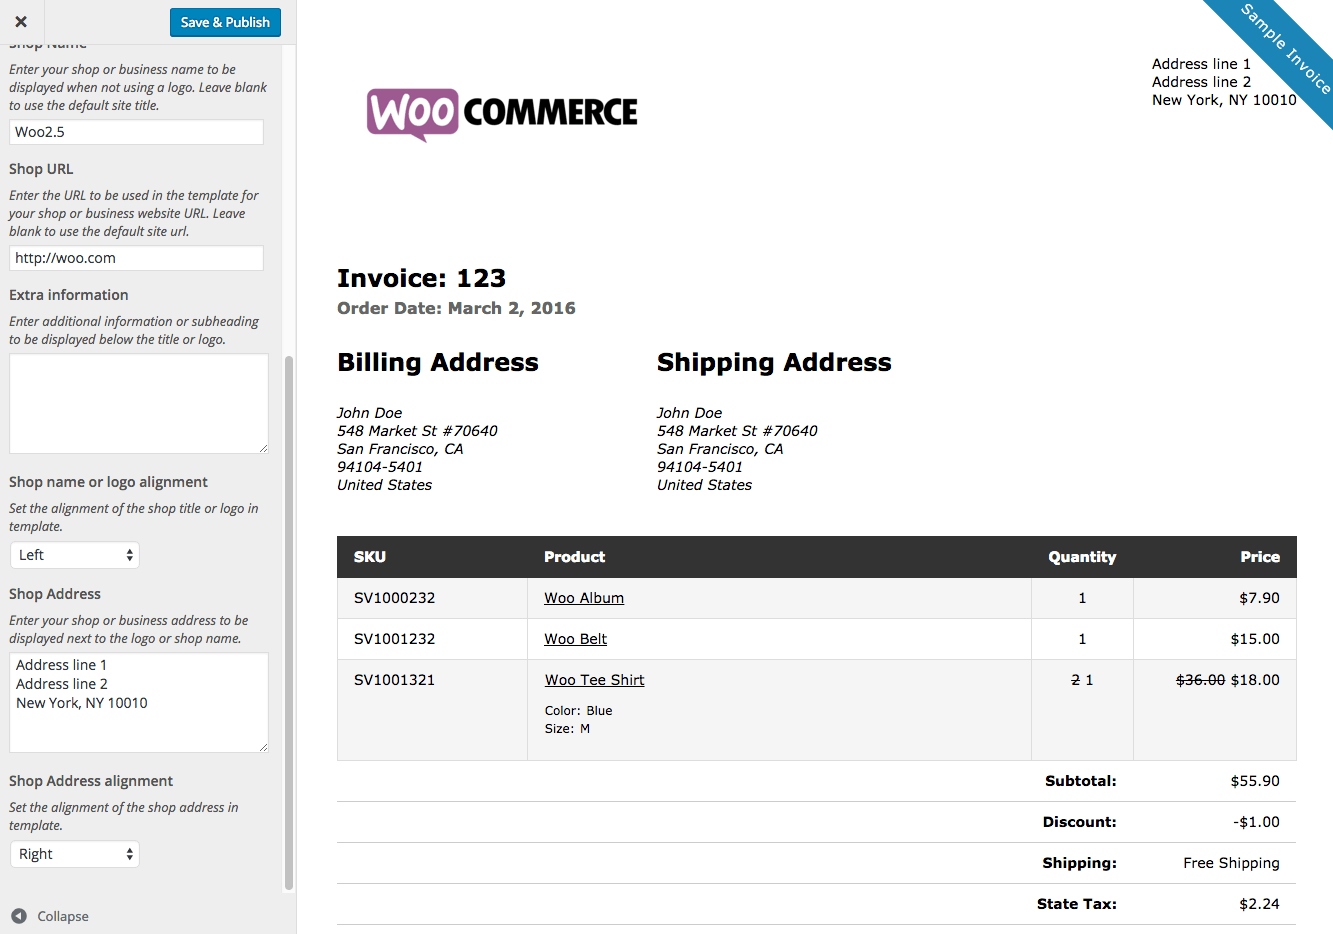 Carsforlessus  Scenic Woocommerce Print Invoices Amp Packing Lists  Woocommerce Docs With Extraordinary Woocommerce Print Invoices  Packing Lists Customizer With Divine Receipt For Also Doctrine Of Constructive Receipt In Addition Business Receipt App And Army Hand Receipt Form As Well As Receipt Lyrics Additionally Free Receipt Maker Online From Docswoocommercecom With Carsforlessus  Extraordinary Woocommerce Print Invoices Amp Packing Lists  Woocommerce Docs With Divine Woocommerce Print Invoices  Packing Lists Customizer And Scenic Receipt For Also Doctrine Of Constructive Receipt In Addition Business Receipt App From Docswoocommercecom